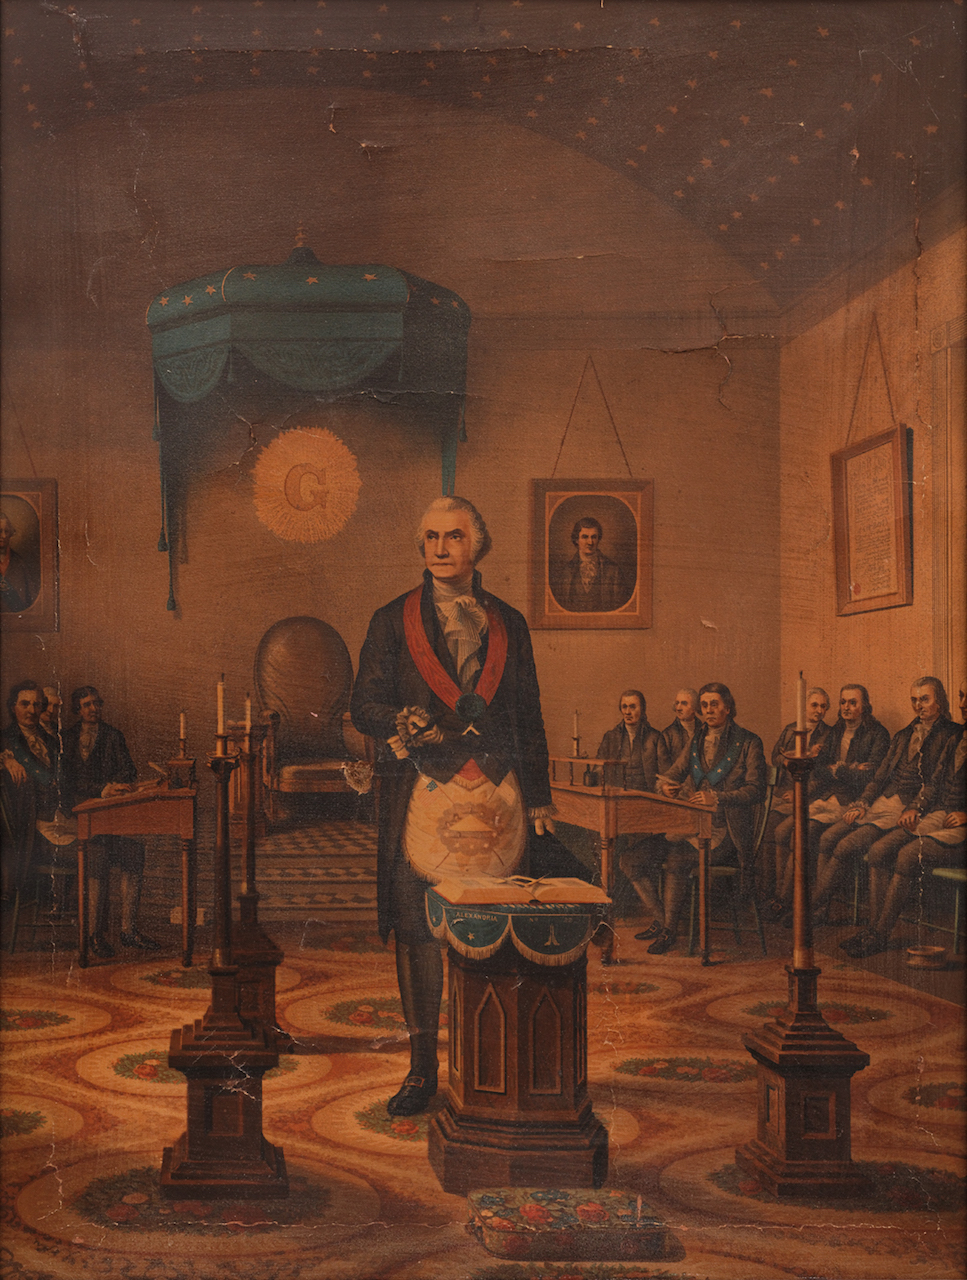 Washington as a Freemason, Publisher unidentified (United States, late-19th century), oleograph on linen, 28 1/2 x 22 3/8 x 1 3/8 inches (courtesy American Folk Art Museum, photo by José Andrés Ramírez)